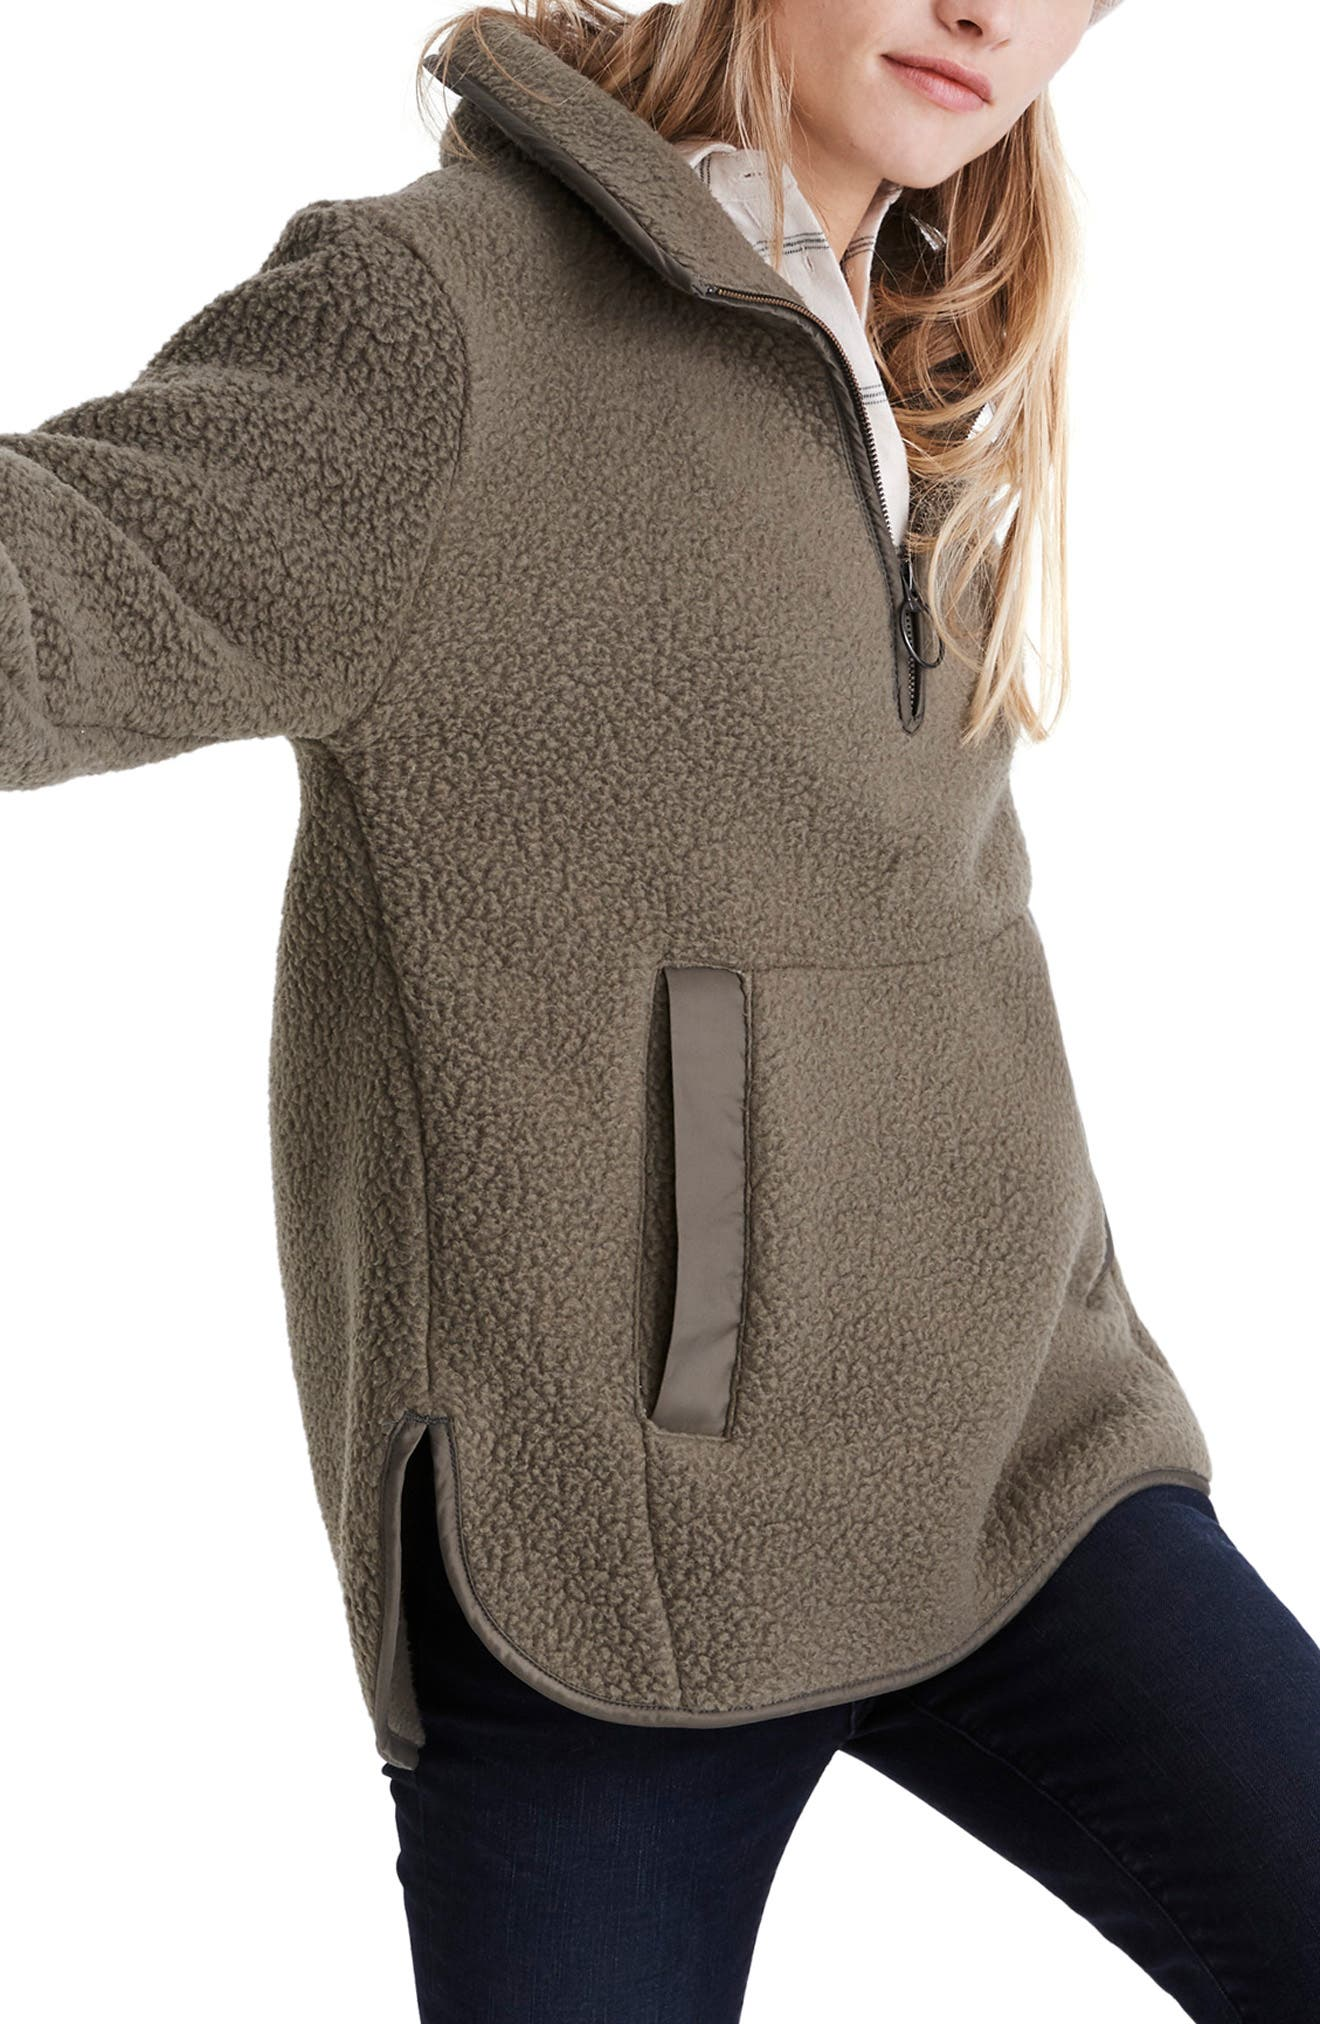 MADEWELL, Polartec<sup>®</sup> Fleece Popover Jacket, Alternate thumbnail 3, color, 300